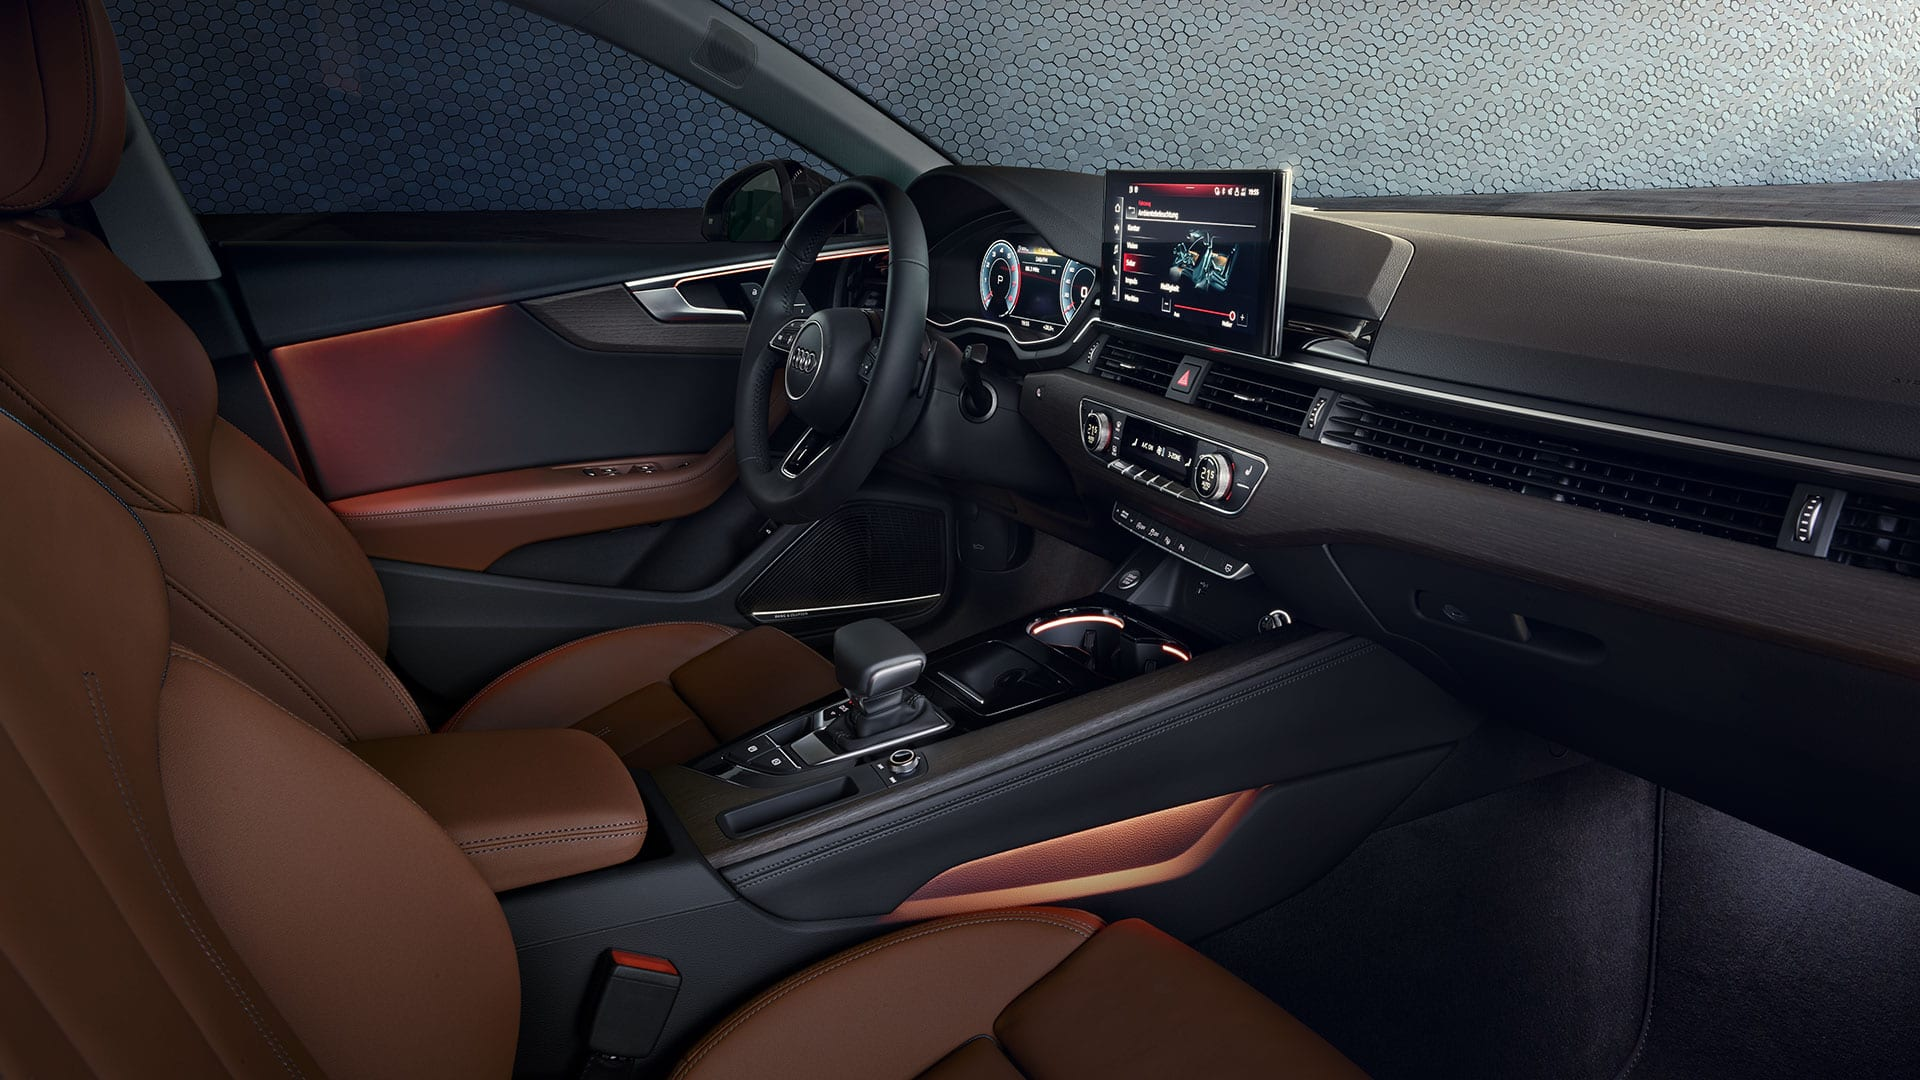 Interior in the Audi A5 Sportback